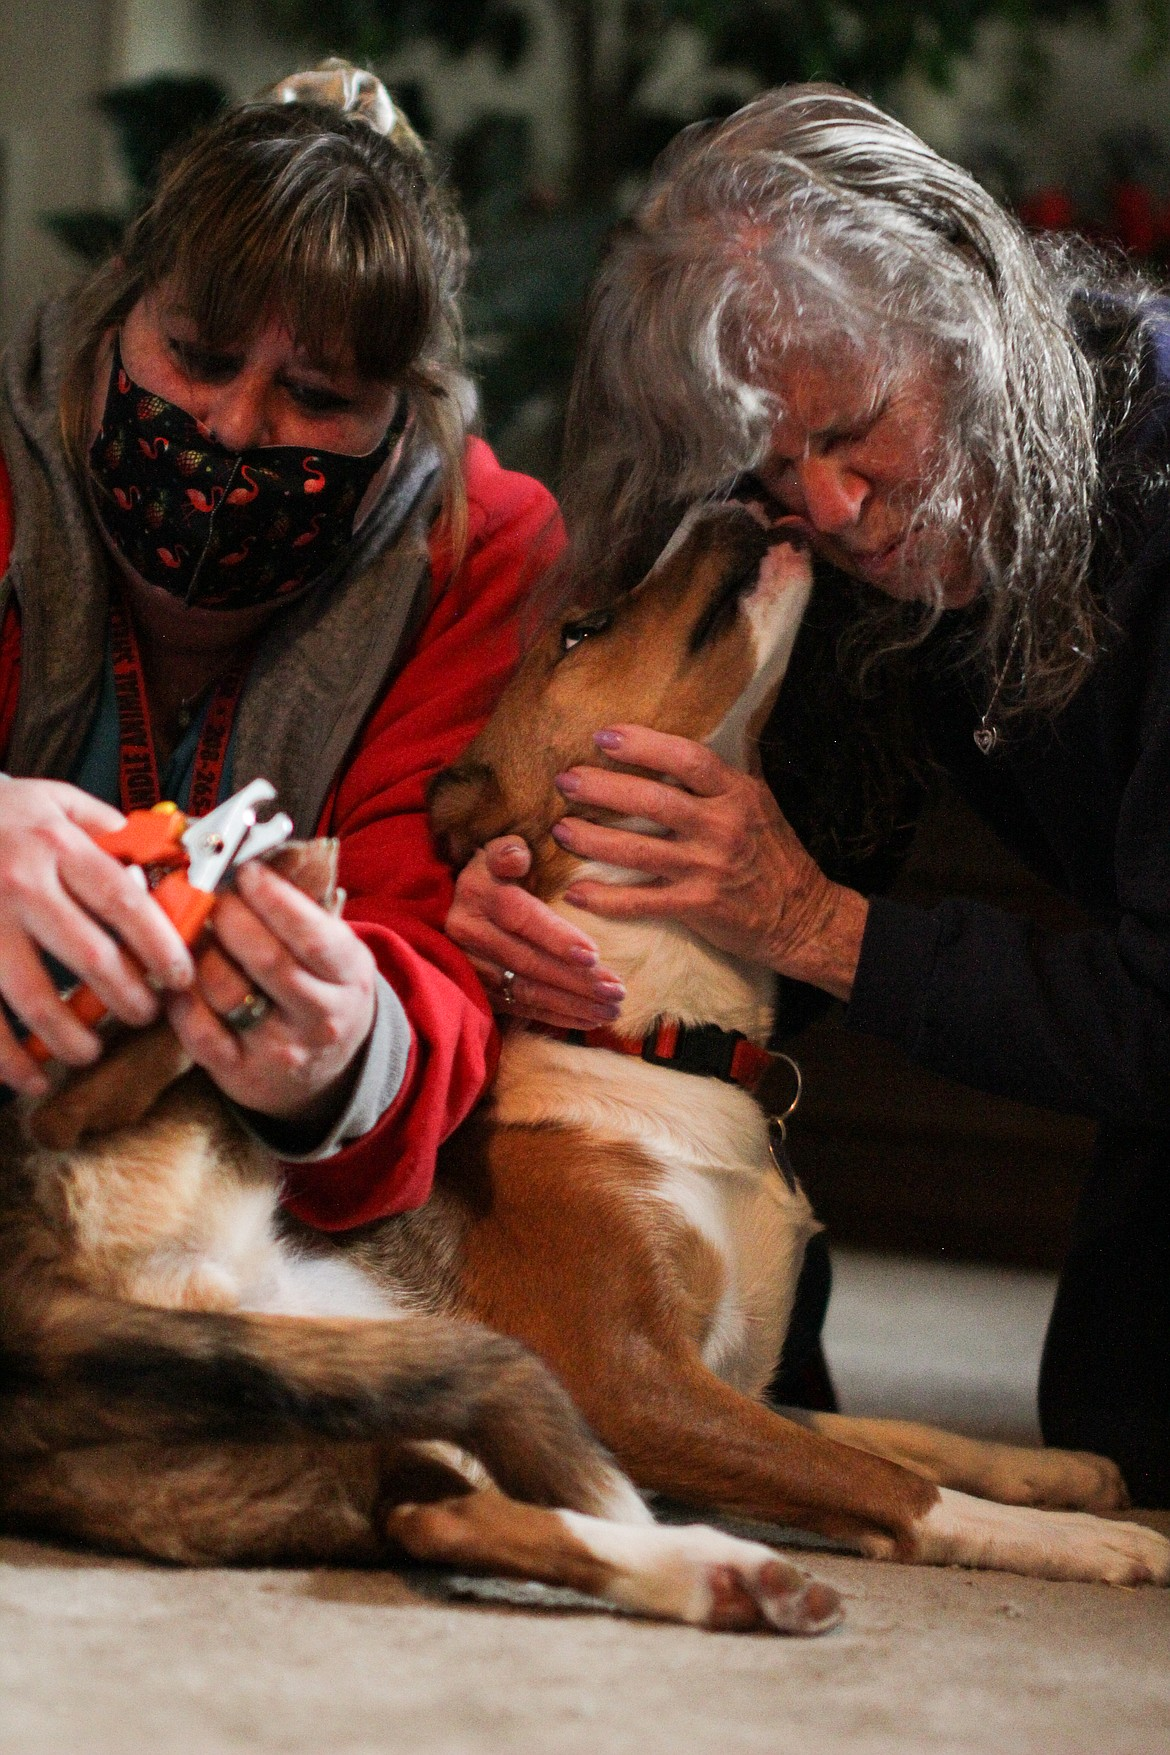 Cricket the dog licks her owner, Bobbe Komanec, while Kendra Dodge clips her nails Tuesday afternoon.